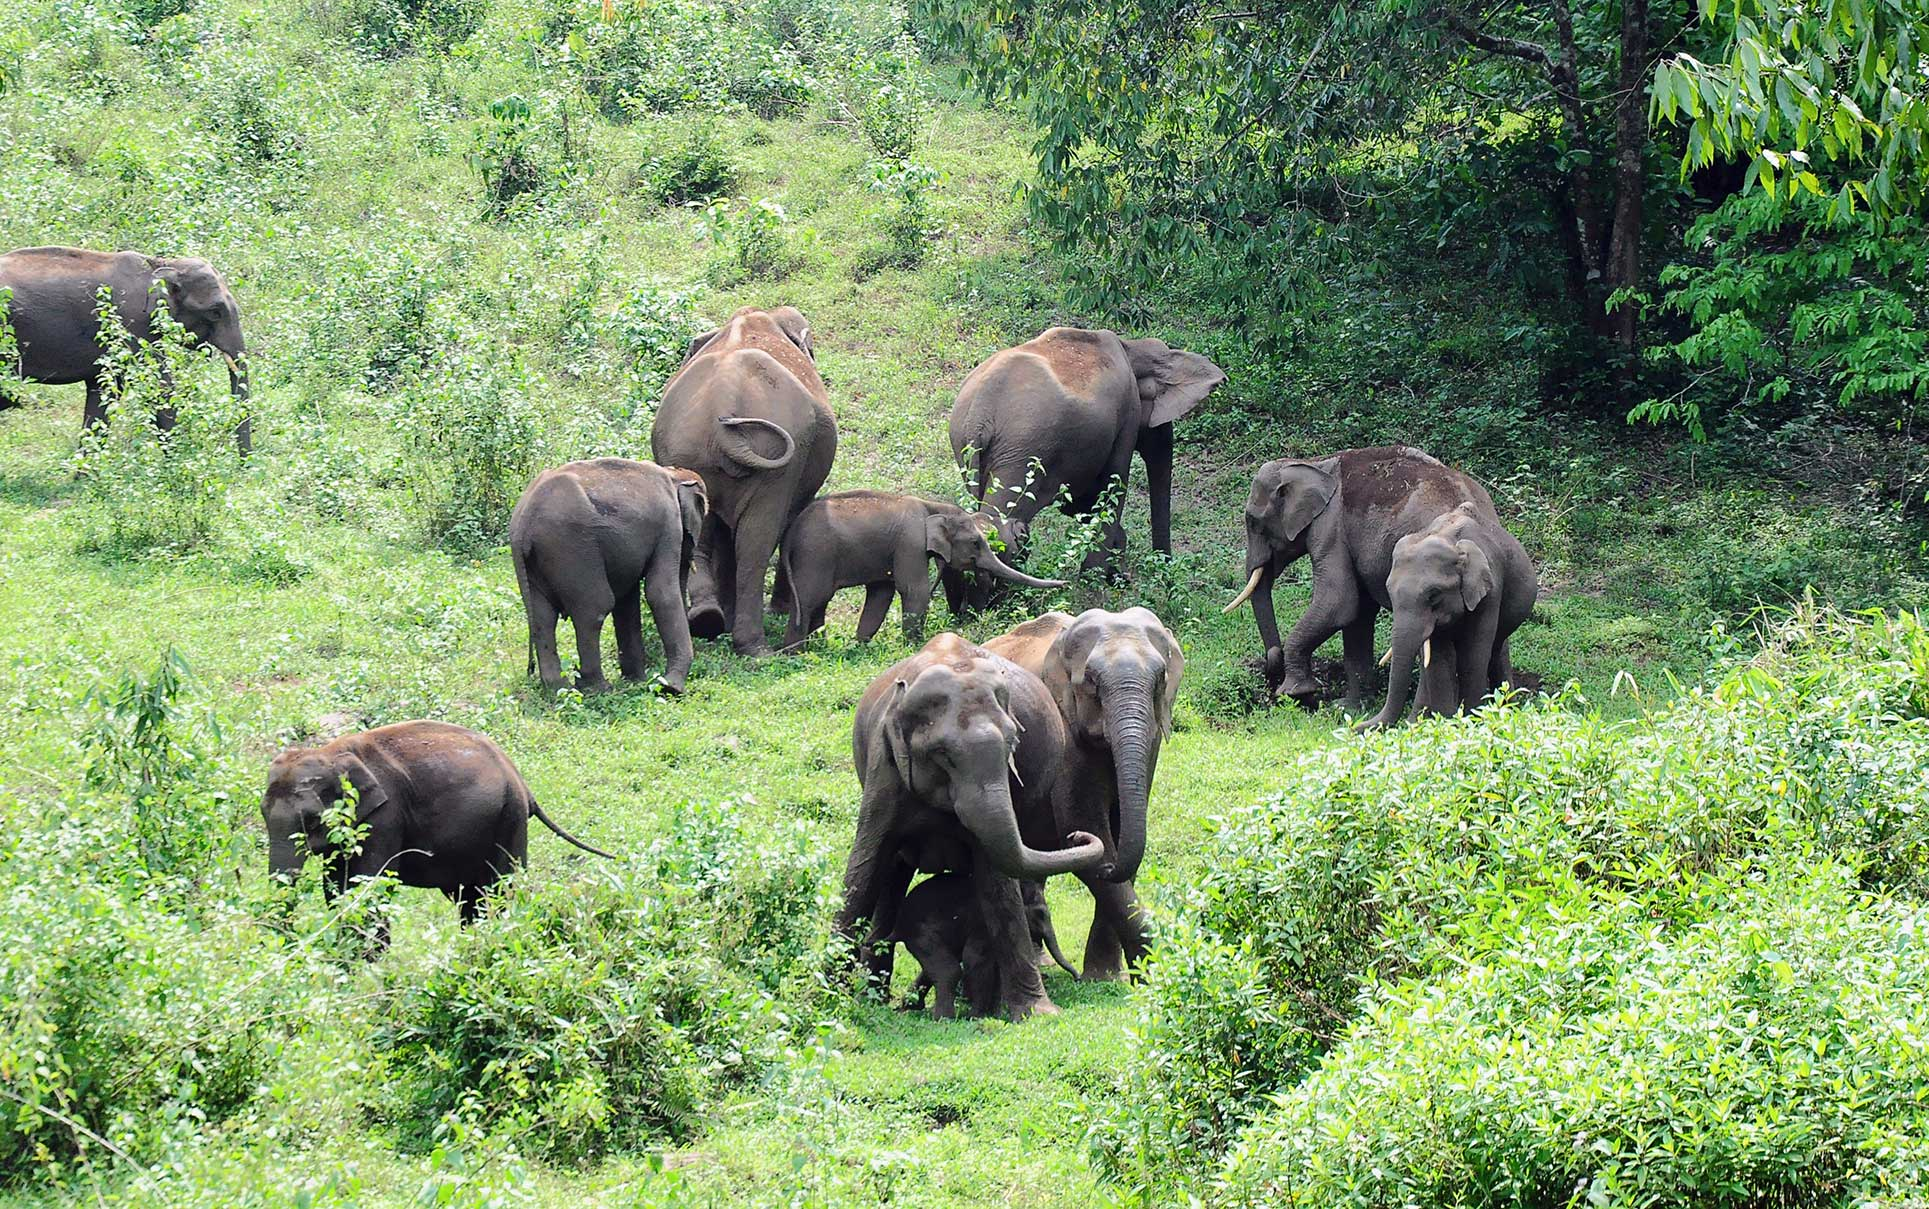 A herd of wild elephants graze near a road in Malakkappara, Thrissur district, in Kerala on Thursday. Vehicular traffic through this road has almost ceased because of the ongoing lockdown and wild elephants have appeared close to human habitat.